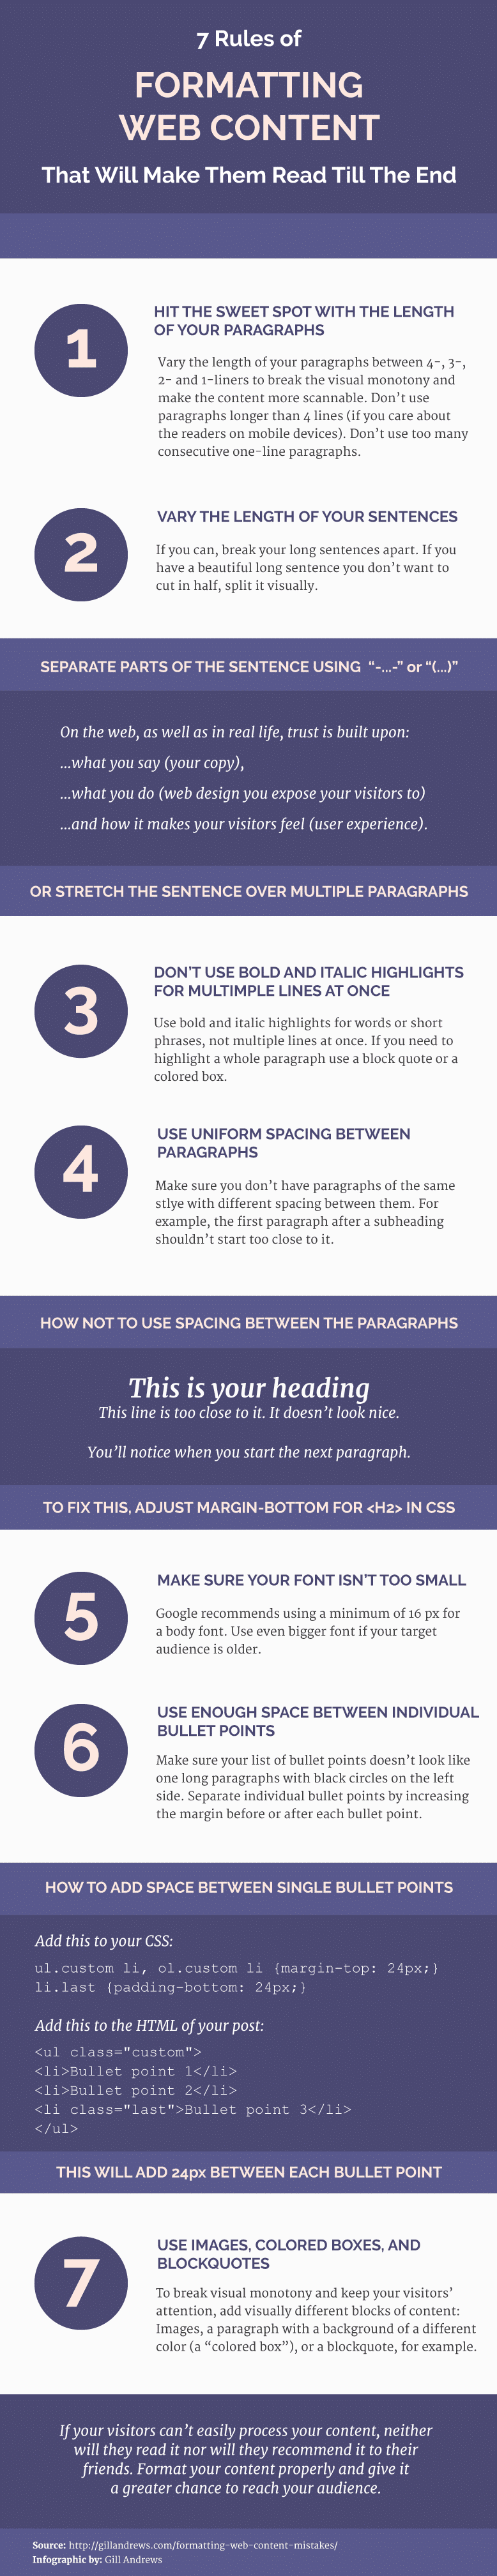 7 Rules of Formatting Web Content That Will Make Them Read Till The End